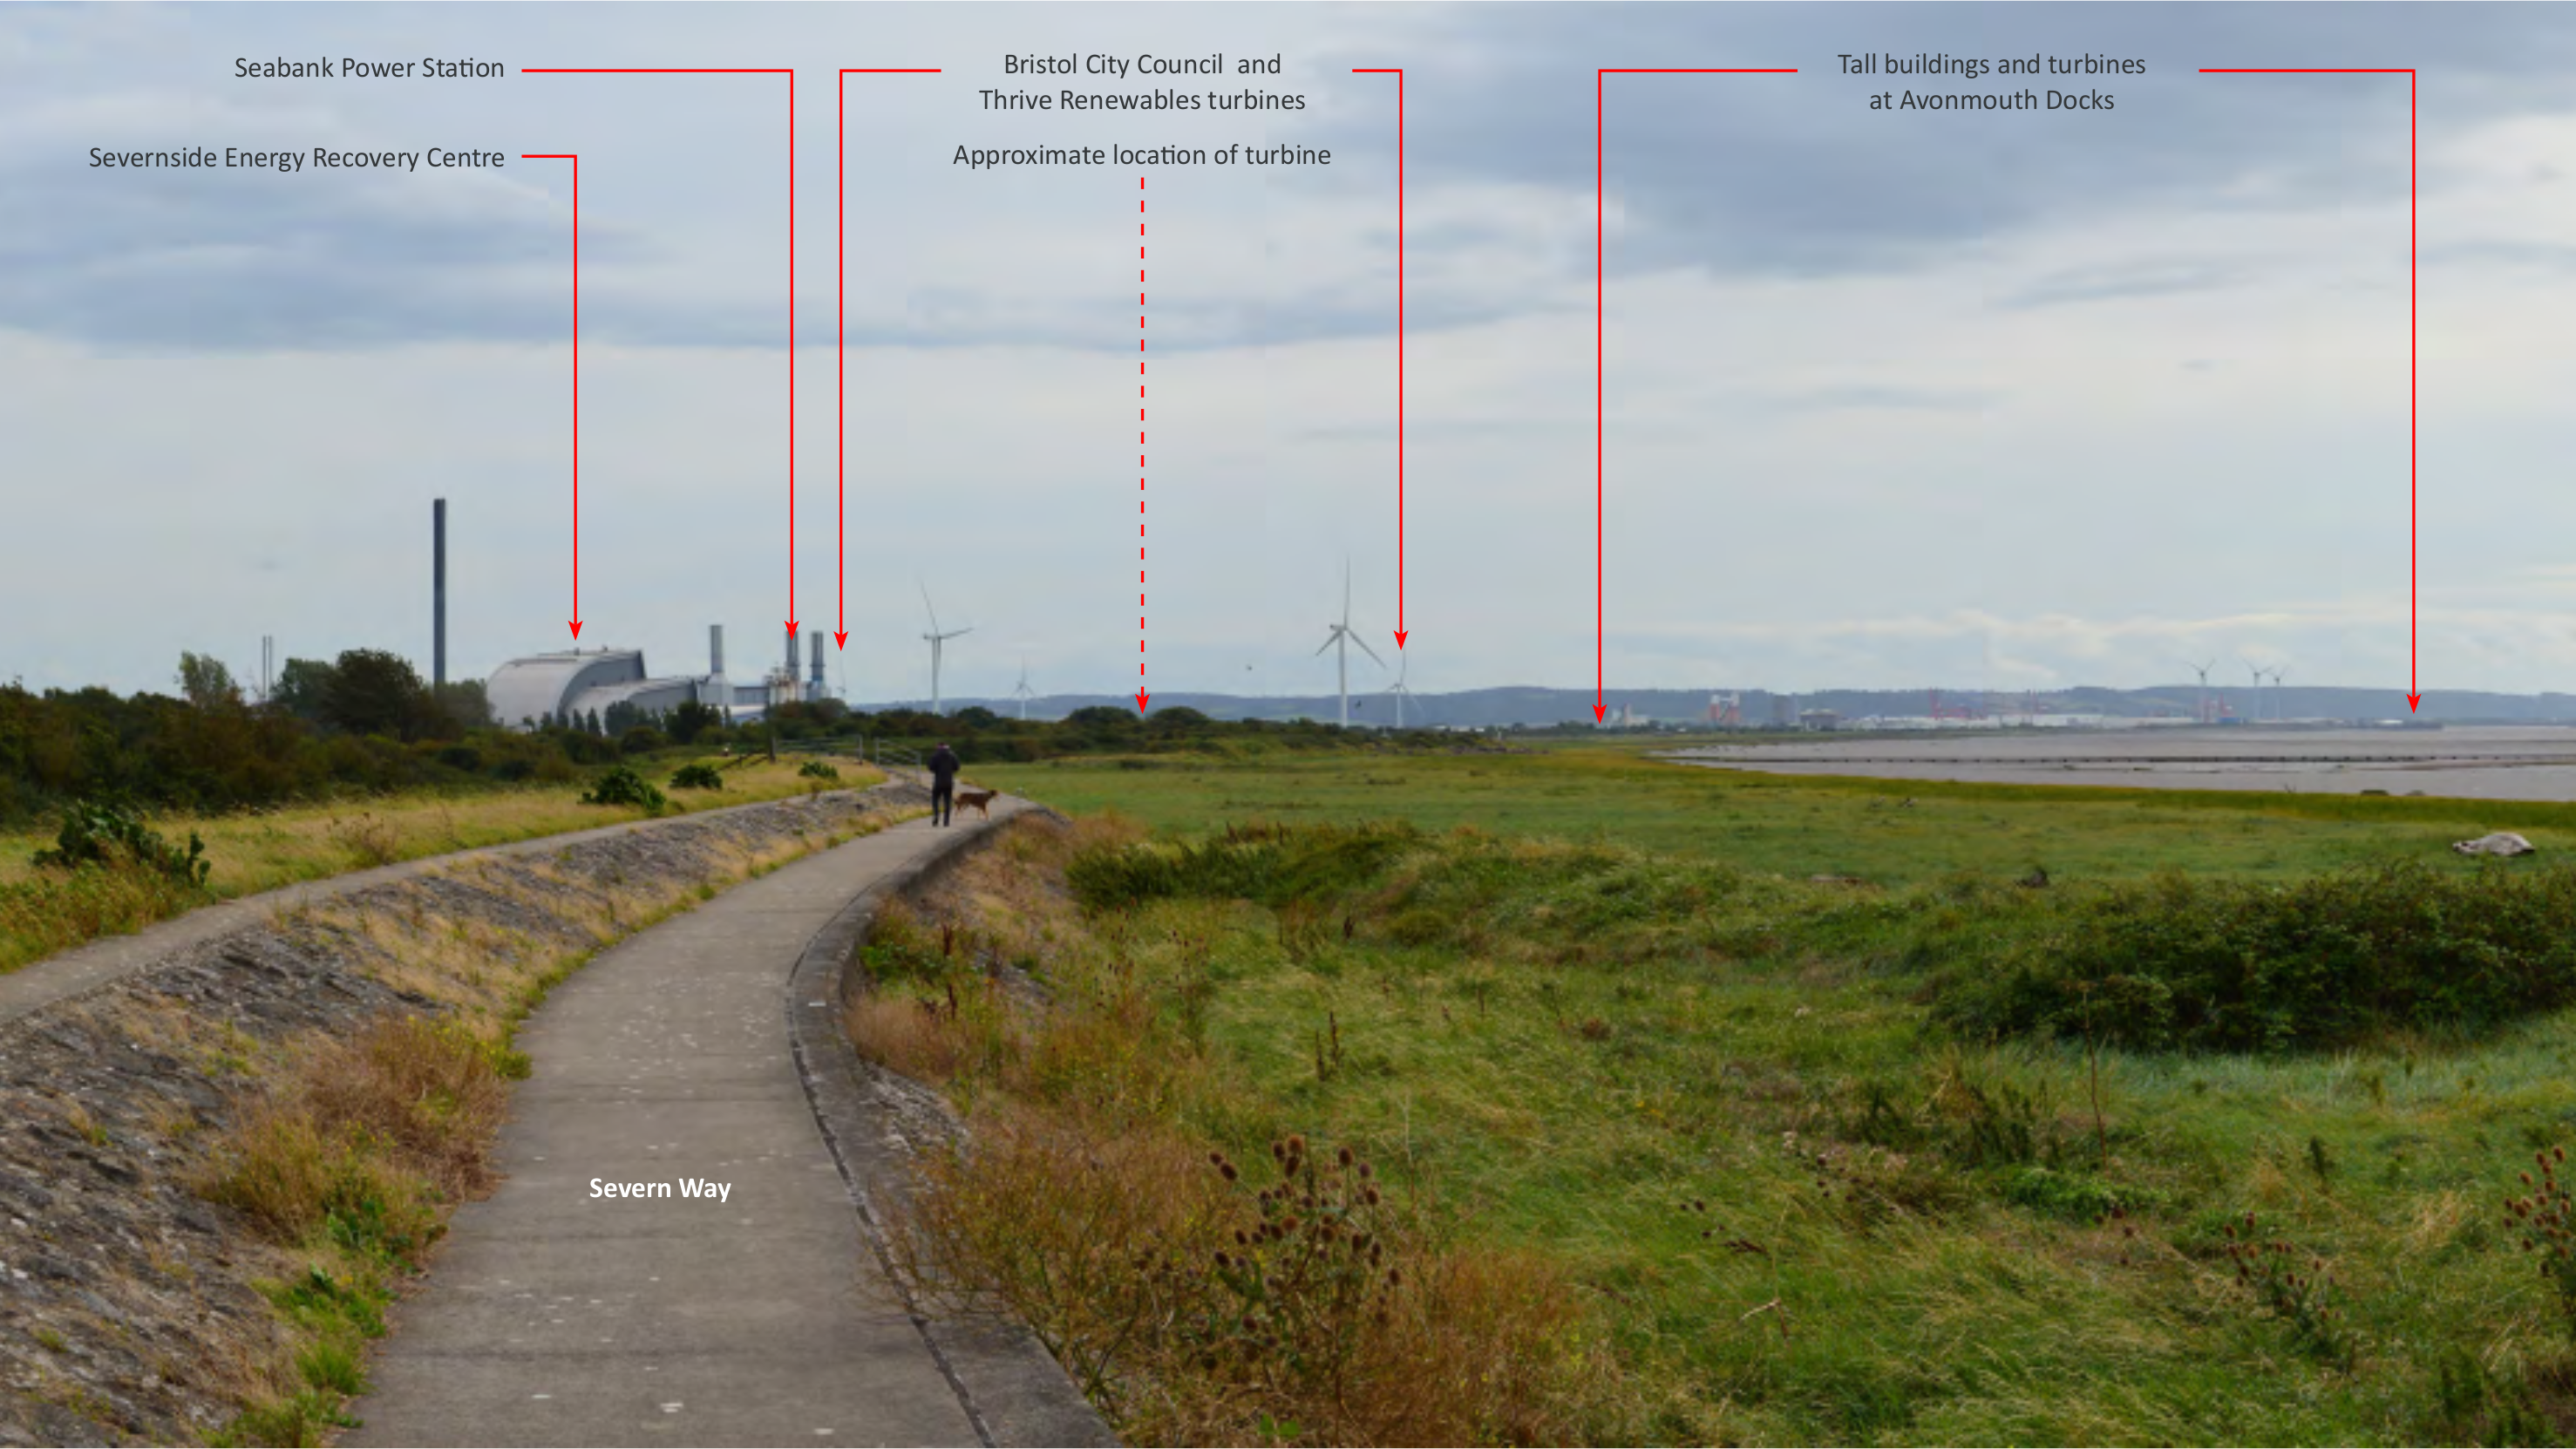 Photo from Severn Way detailing planned location of Wind Turbine next to Seabank Power Station